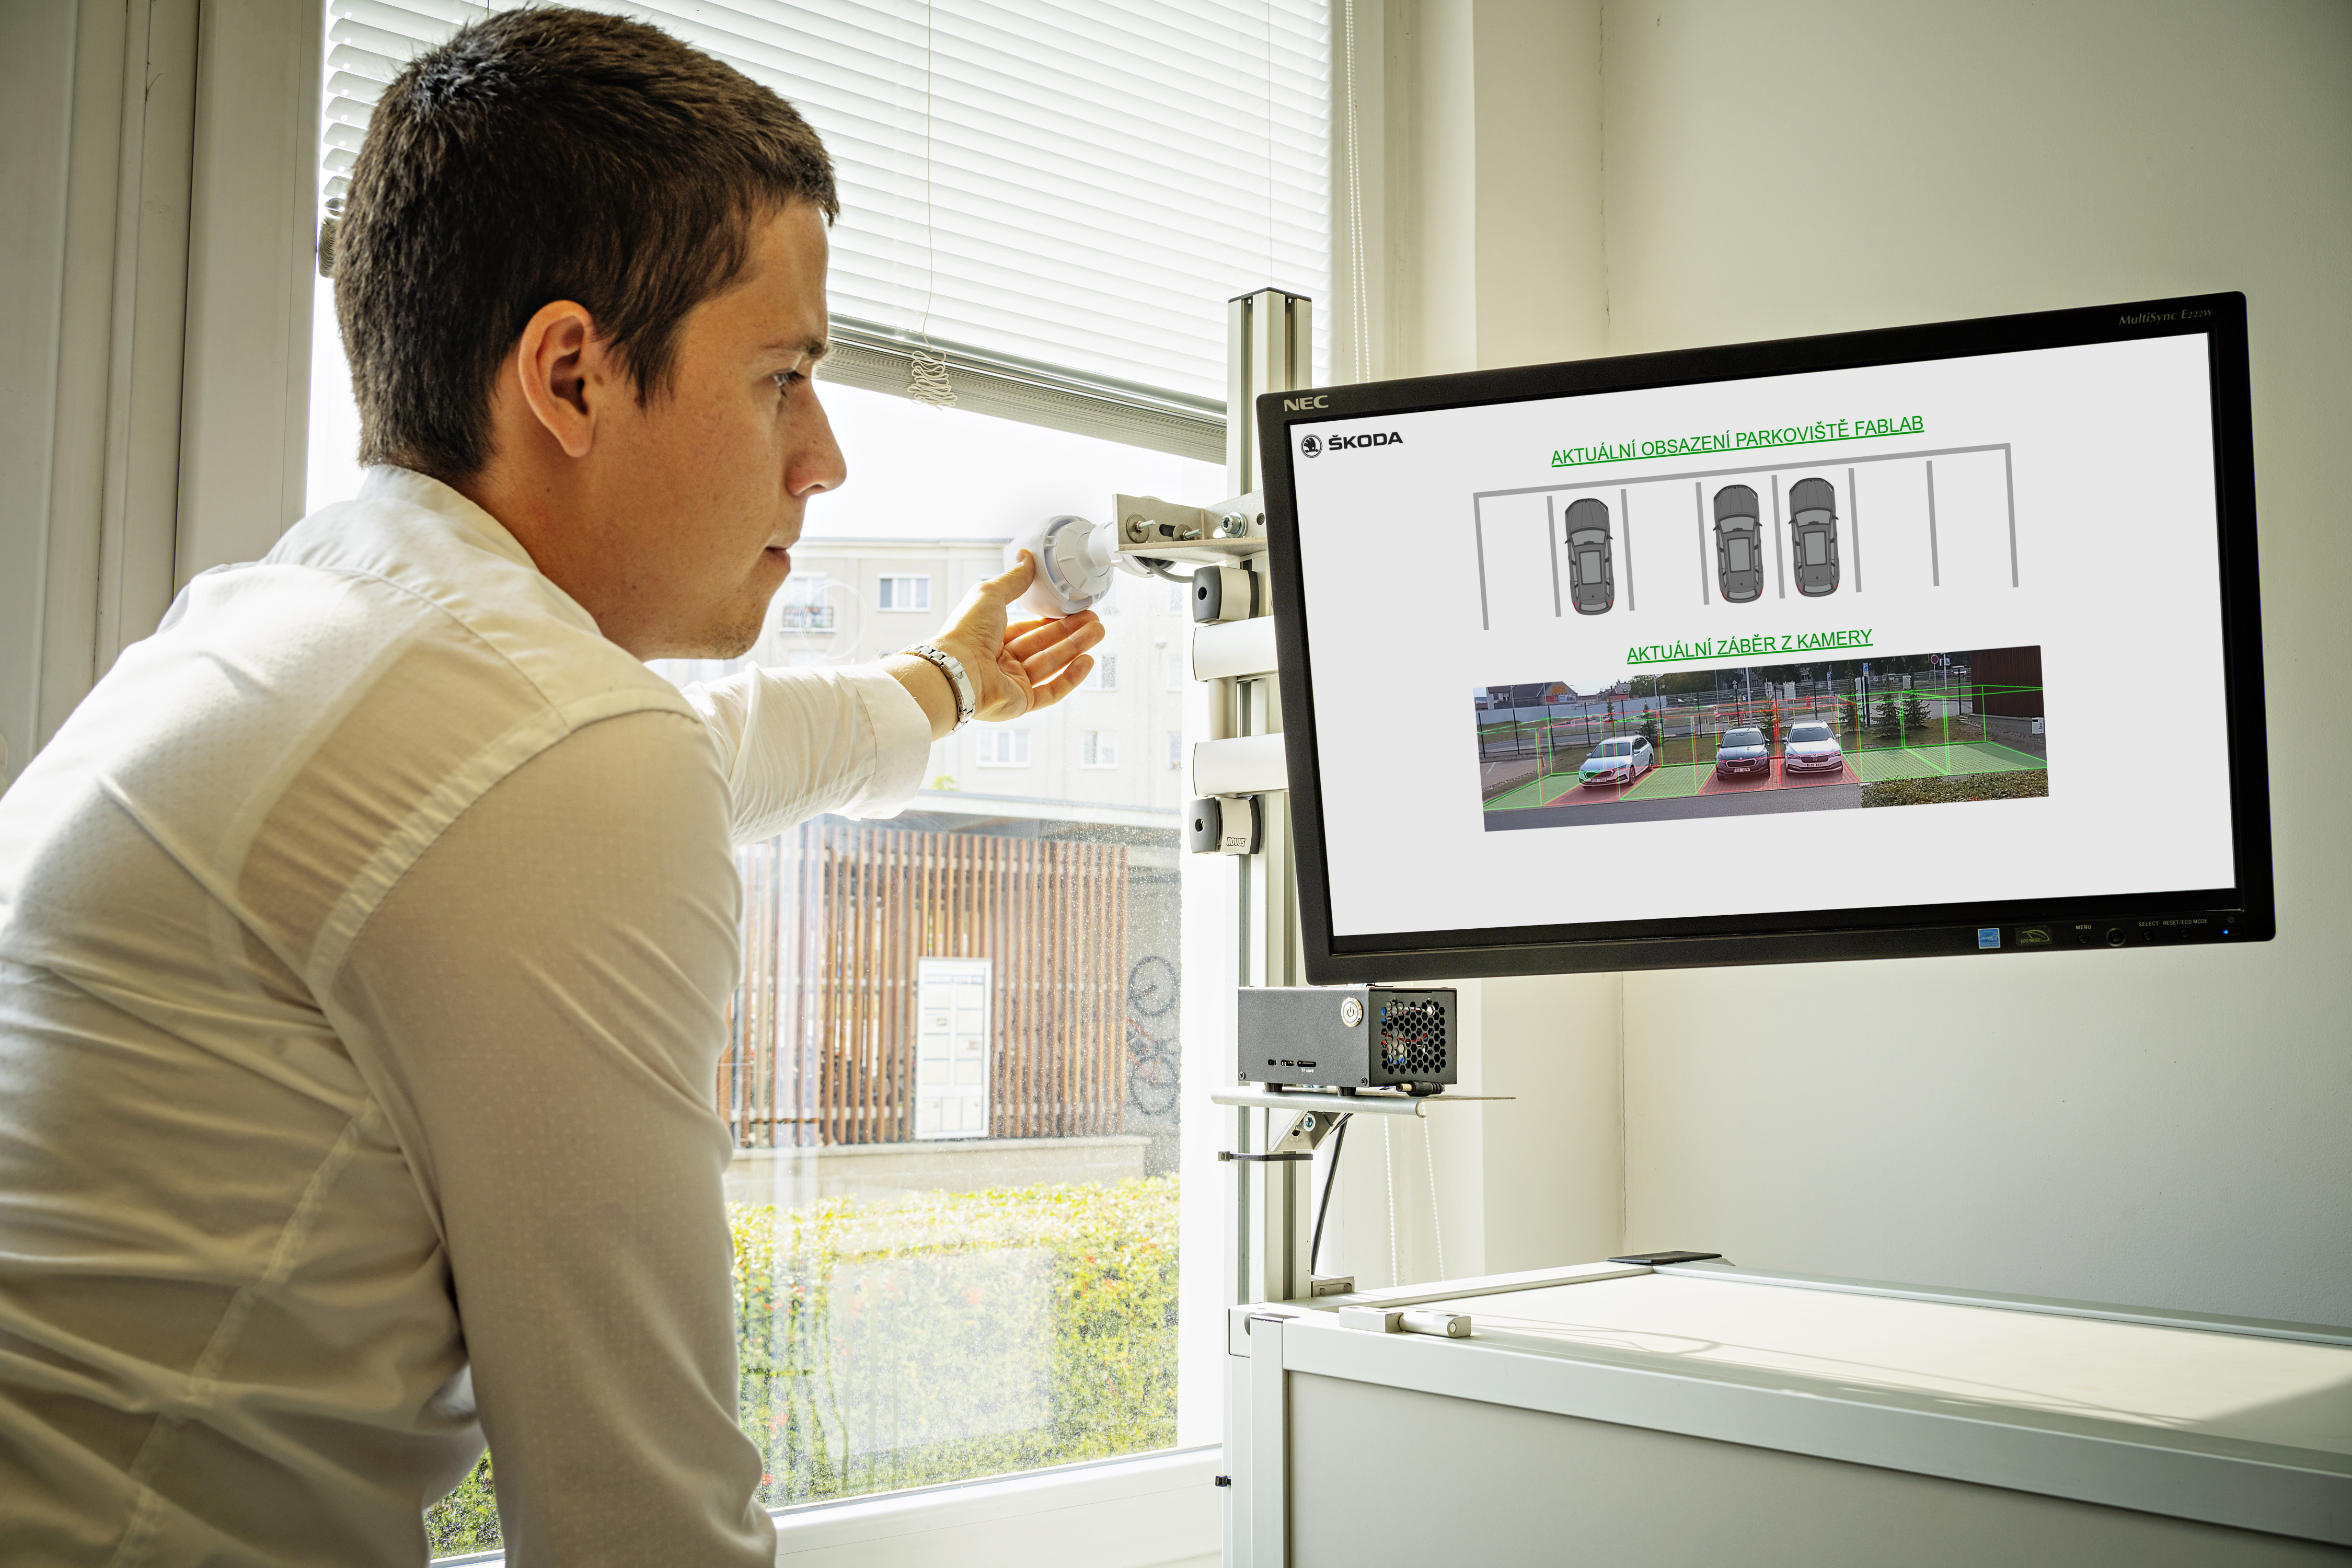 SKODA FabLab tests and optimises image analysis technology as part of an AI pilot project - Image 1